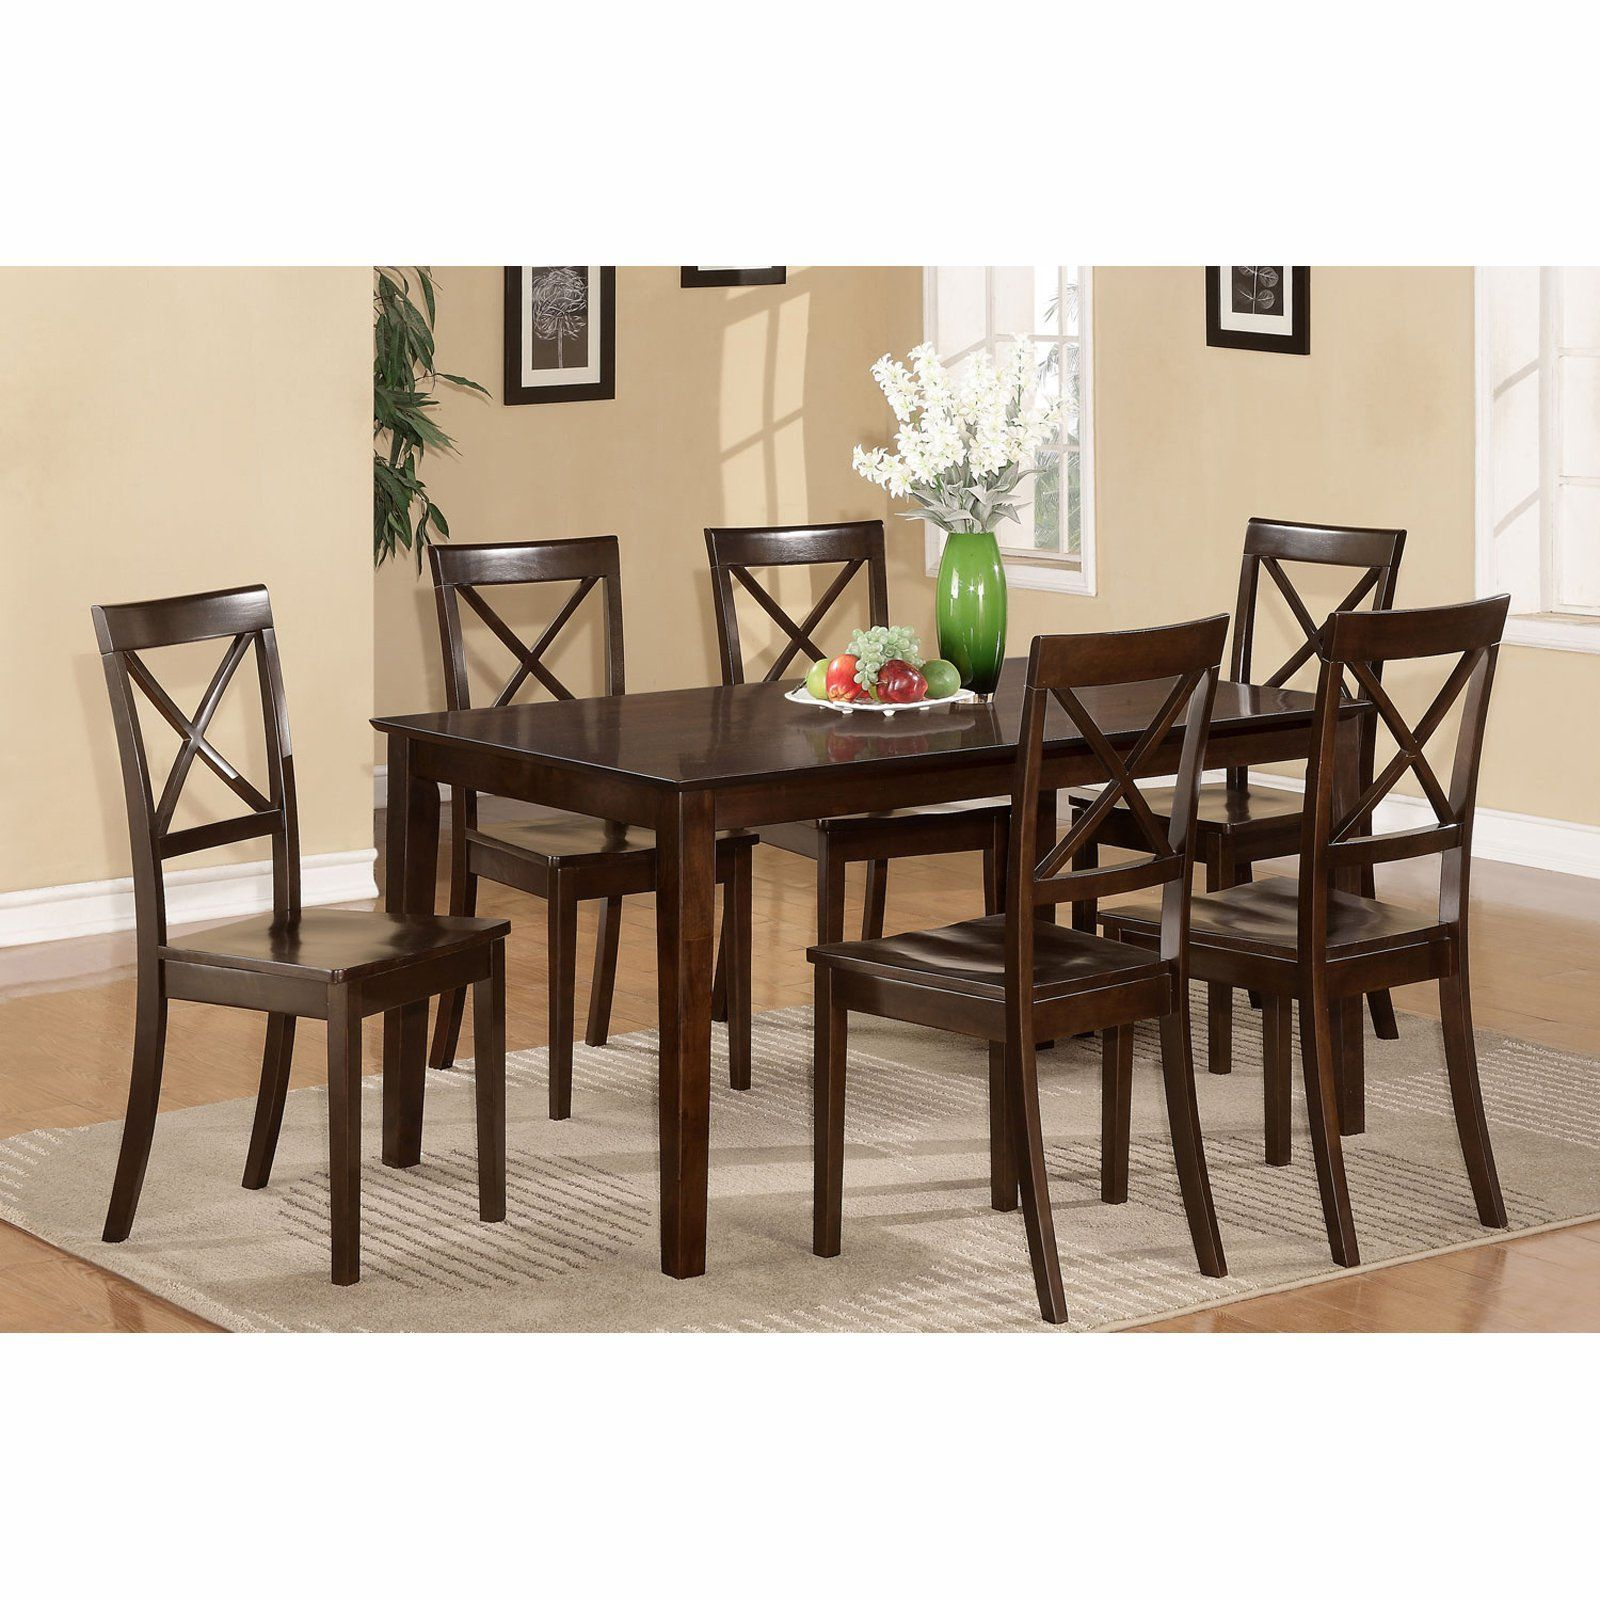 East west furniture capris piece rectangular dining table set with